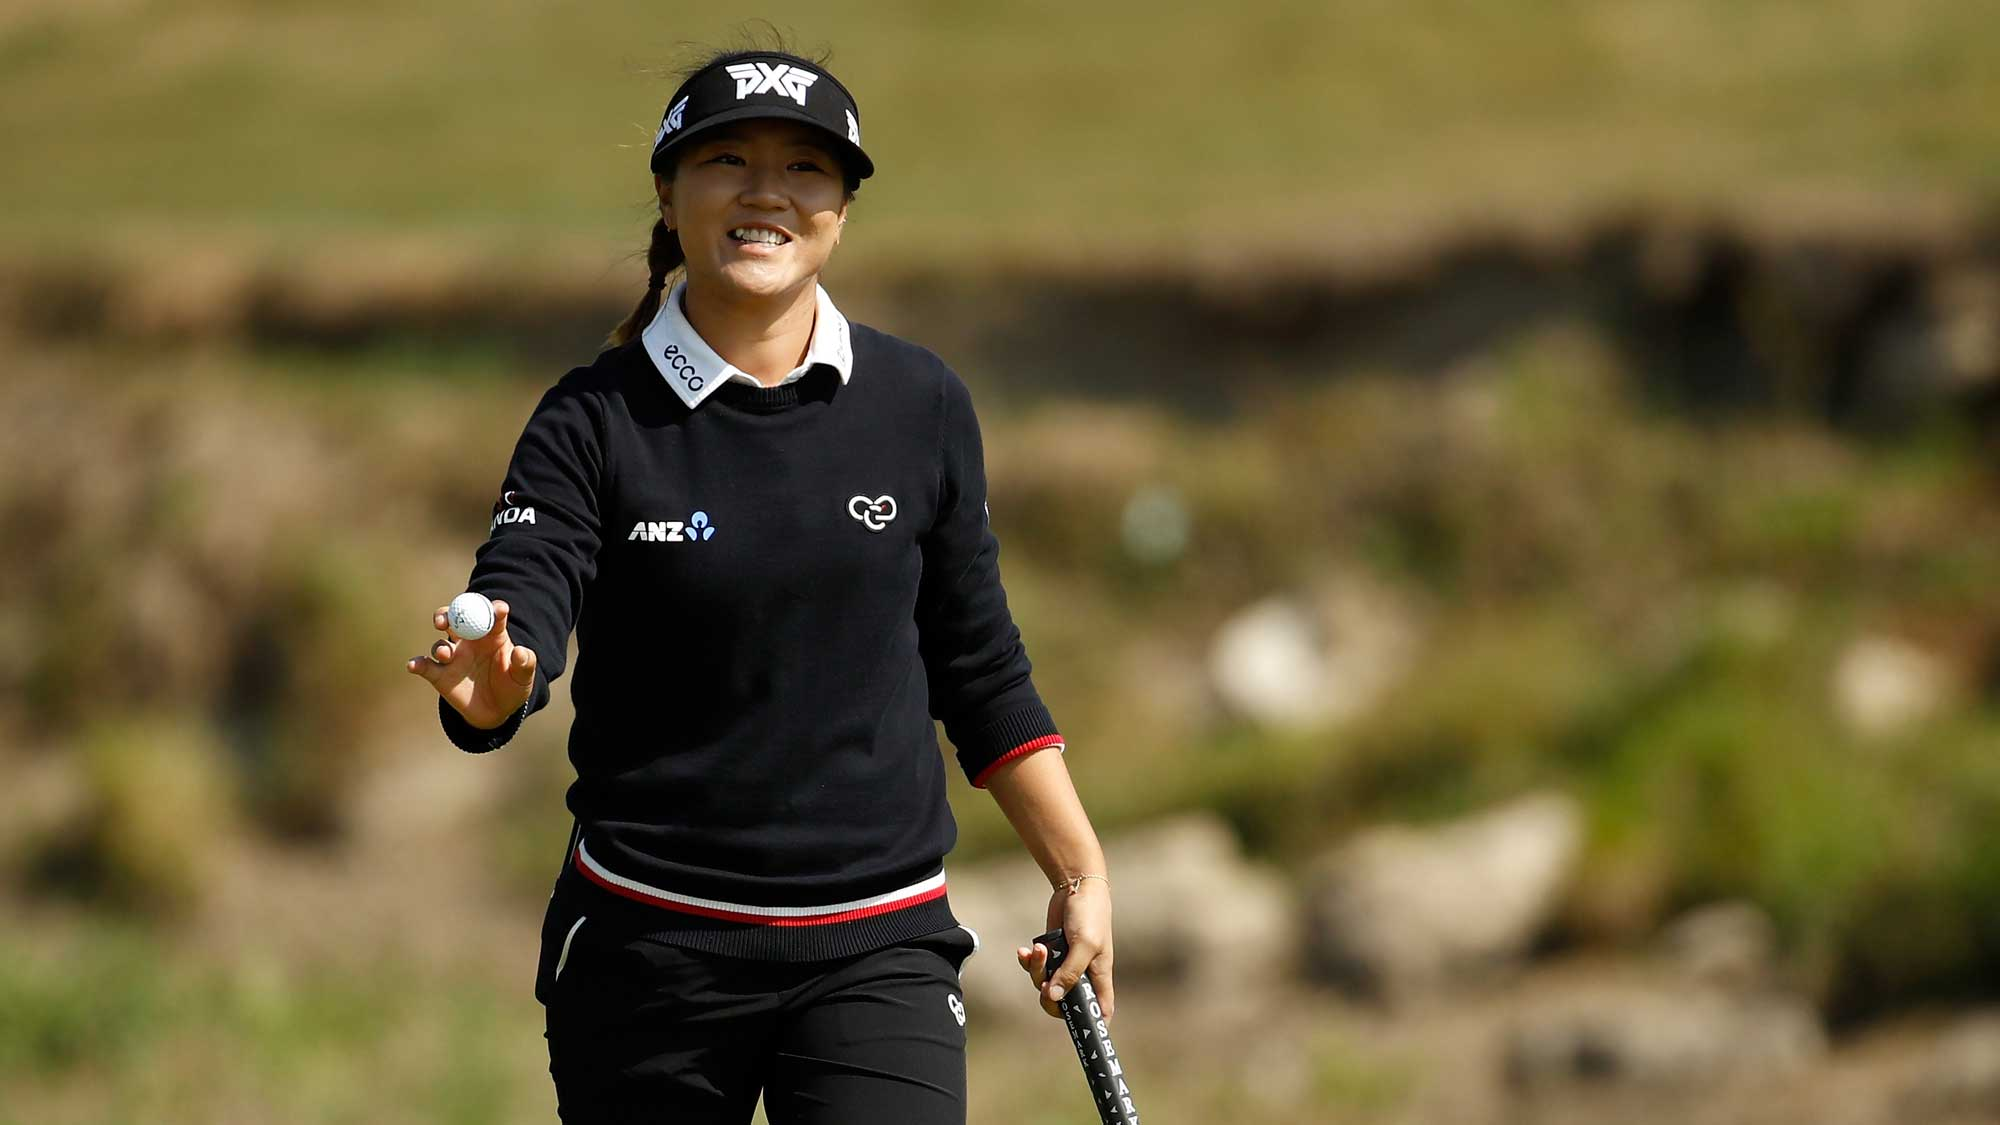 Lydia Ko of New Zealand waves to the crowd after making birdie on the 5th hole during the final round of the Indy Women In Tech Championship-Presented By Guggenheim